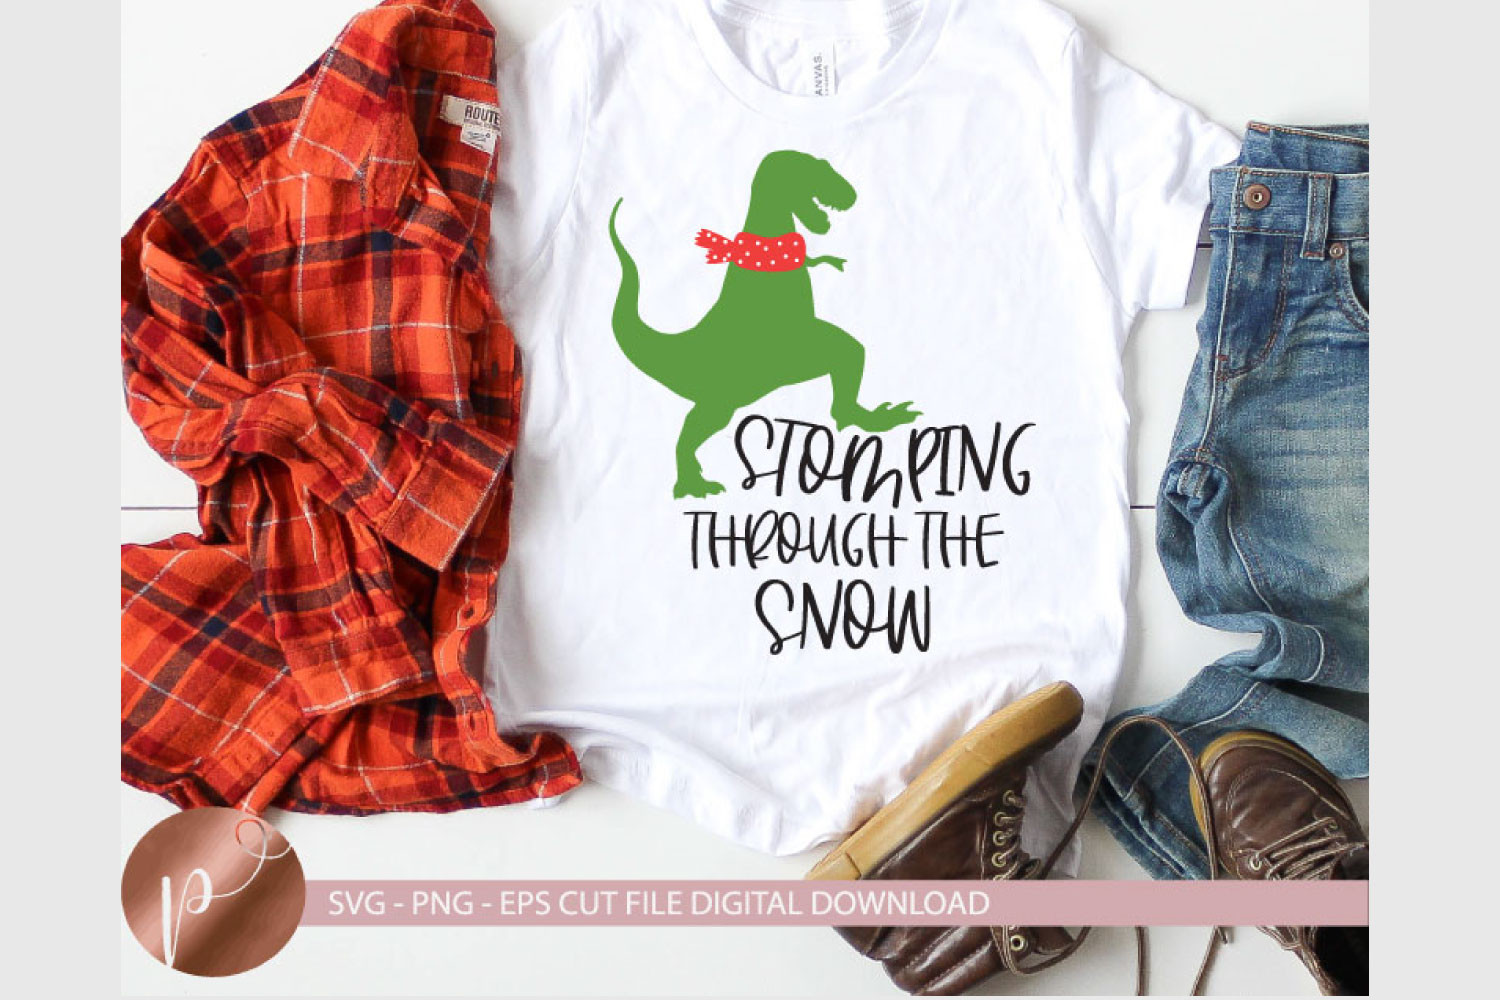 Stomping Through The Snow Svg, Christmas Dinosaur, Svg, Png example image 1